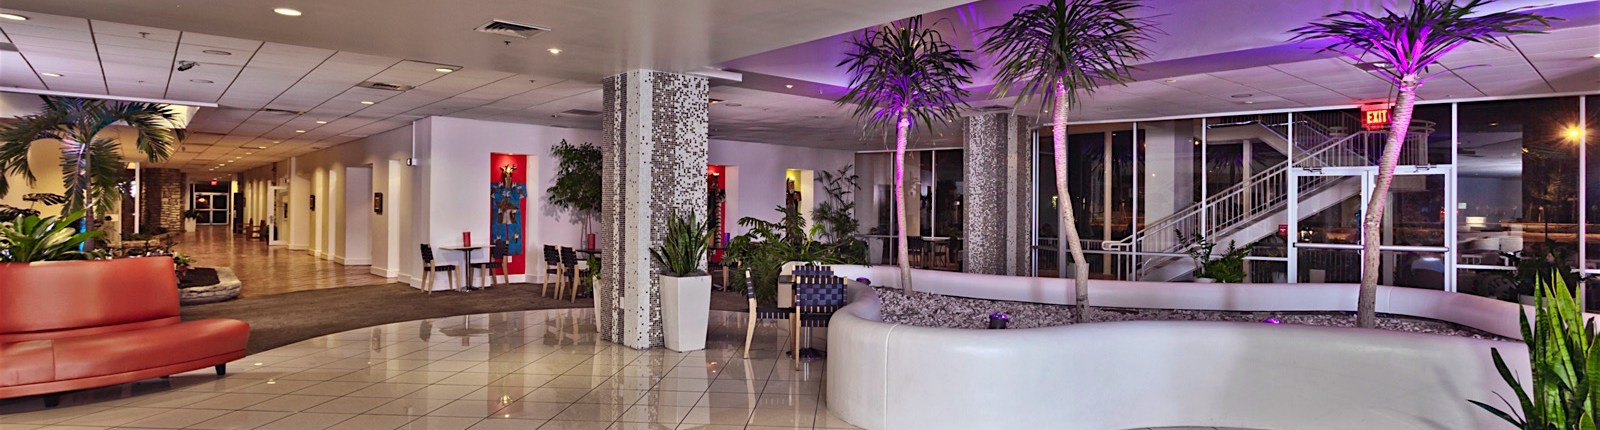 urple_planter_night_lobby